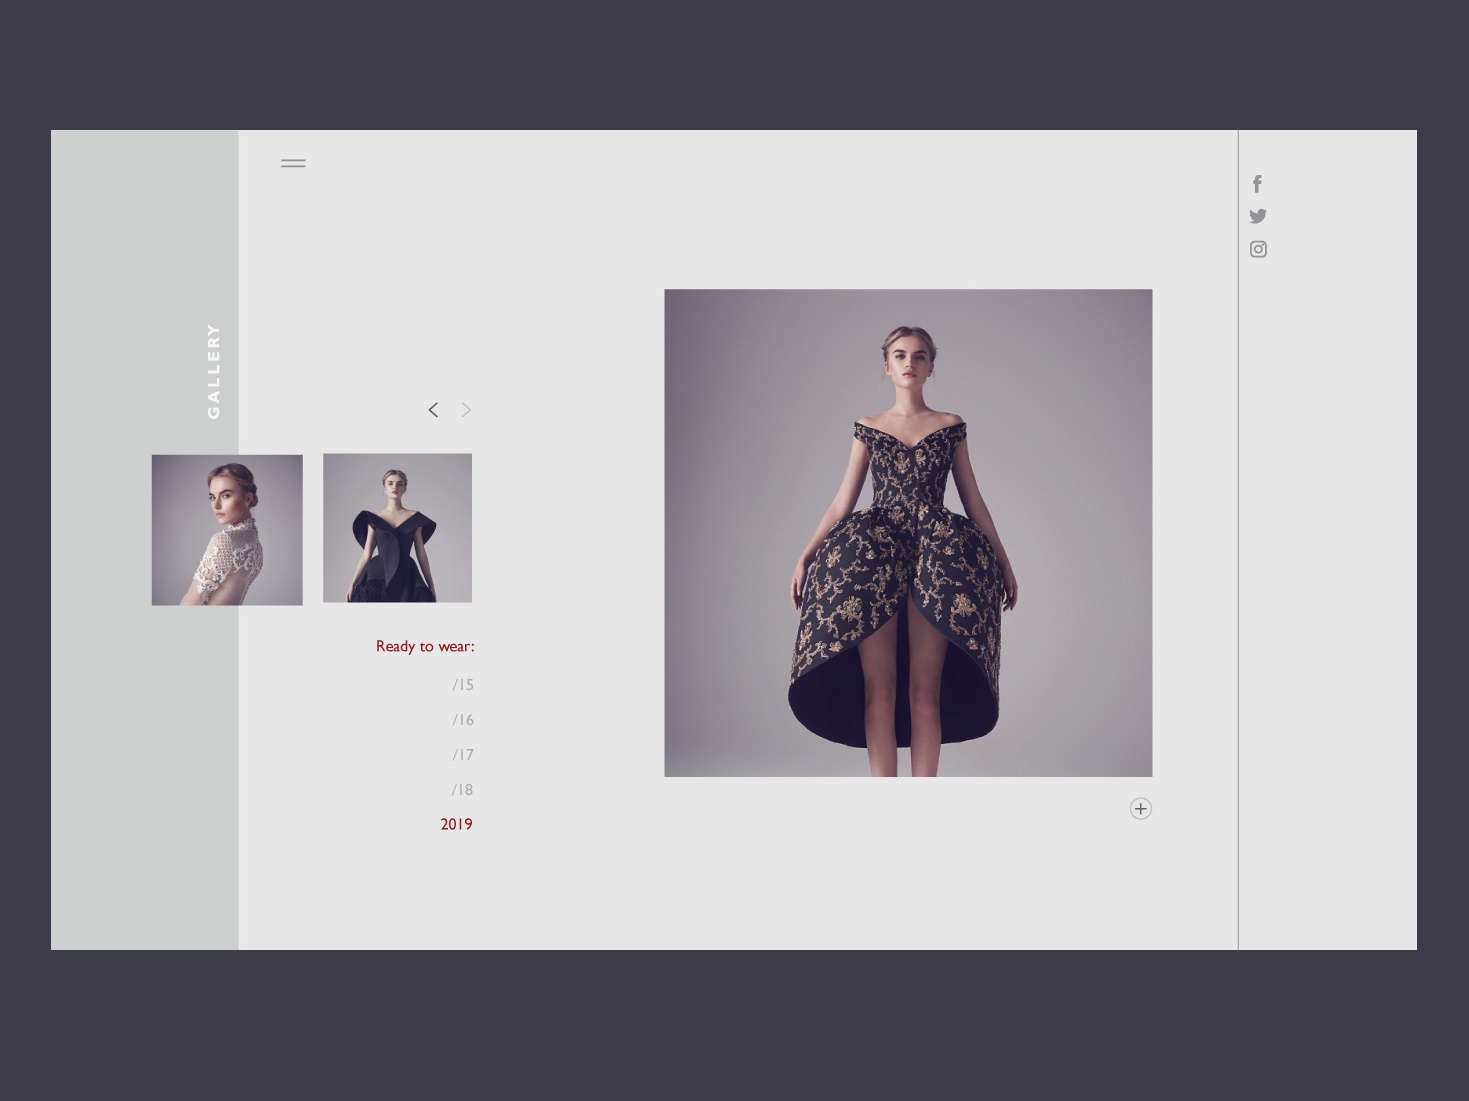 one of the pages of the clothing designer website clean tailoring style typography branding website ux ui landing page landing flat fashion exclusive dress adaptive web app adobe dribbble design